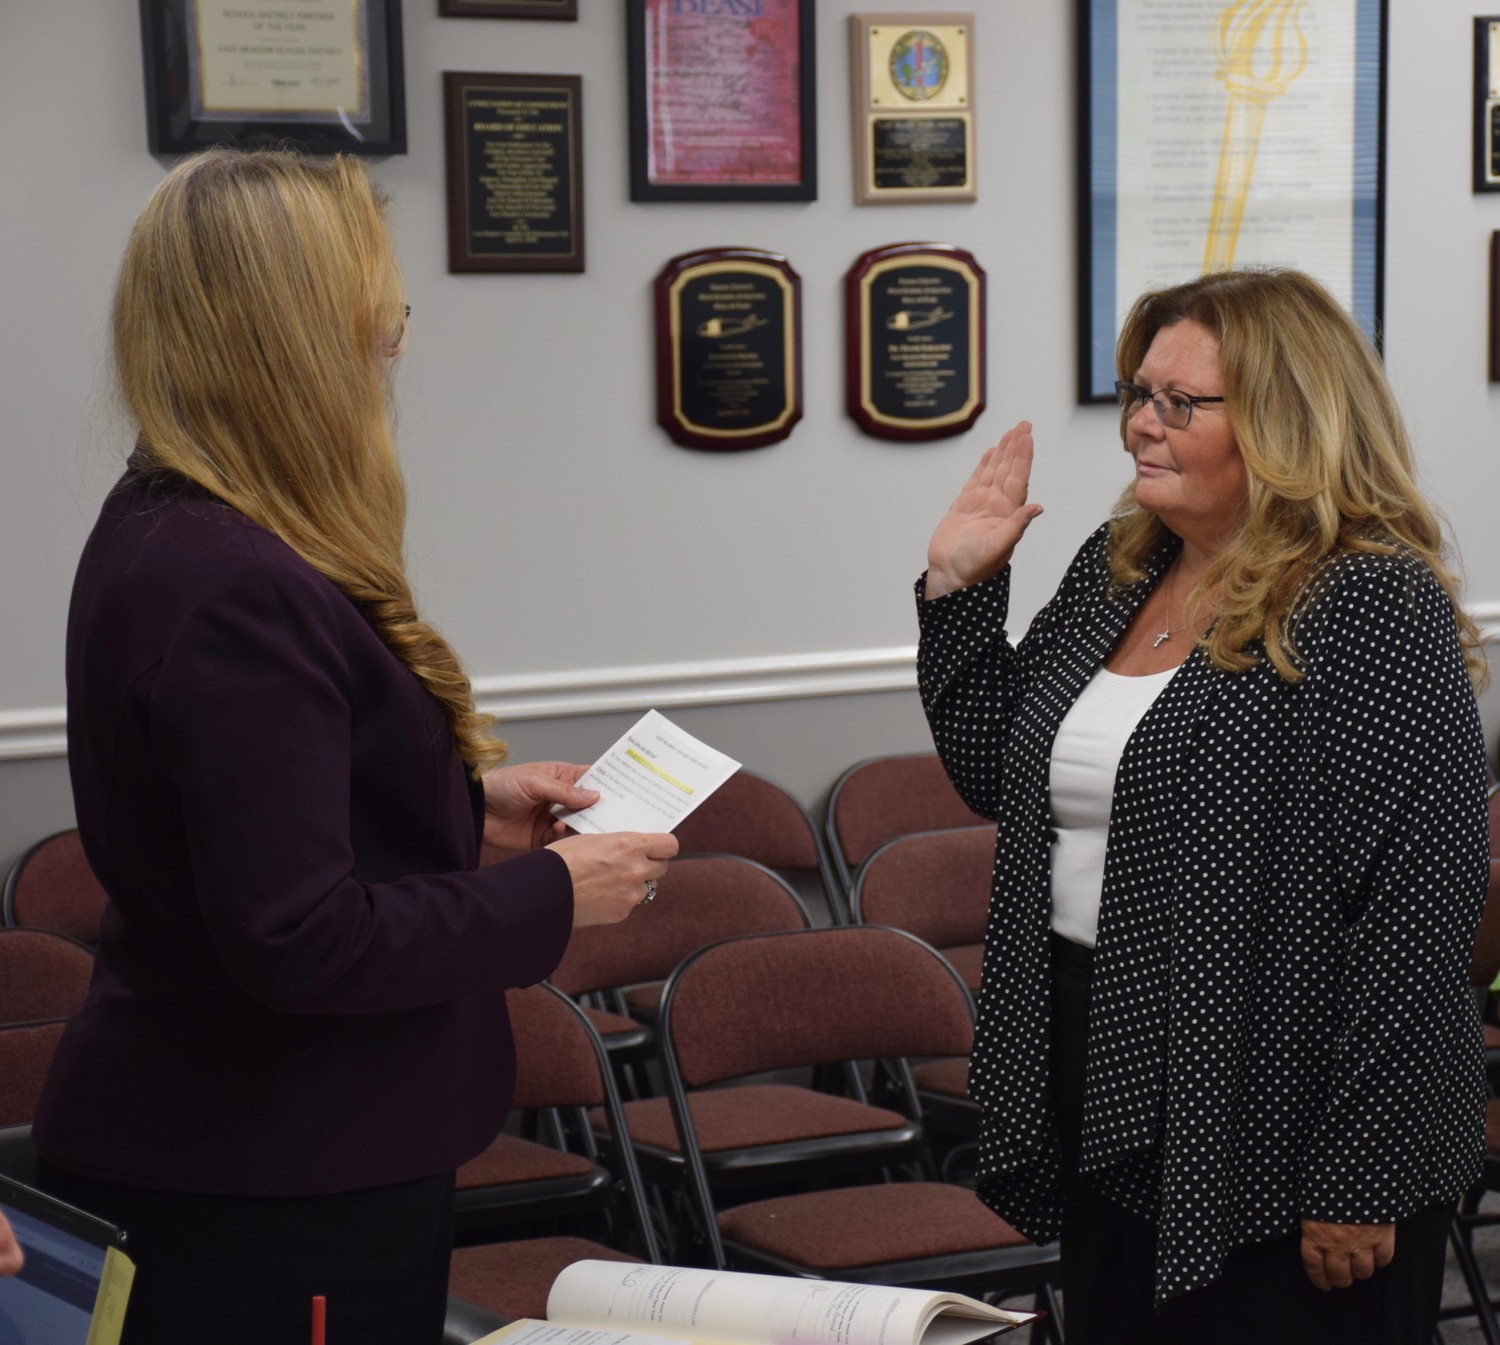 Eileen Napolitano, right, was sworn in as the newest member of the East Meadow Board of Education during its annual reorganization meeting on July 5.